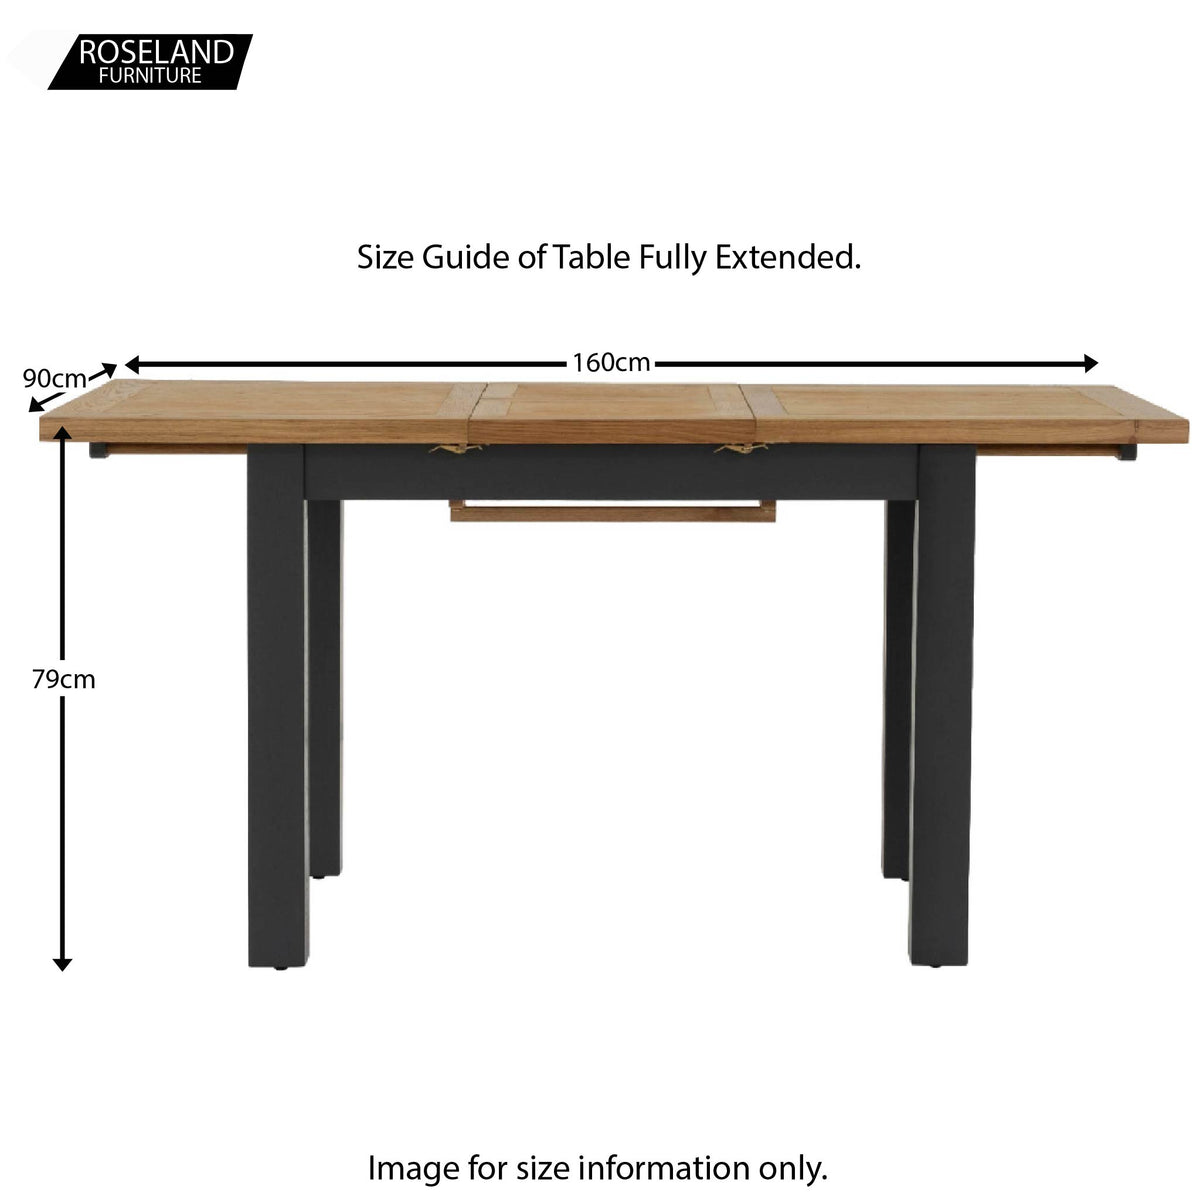 Charlestown Black Extendable Dining Table - Size Guide of Table Fully Extended